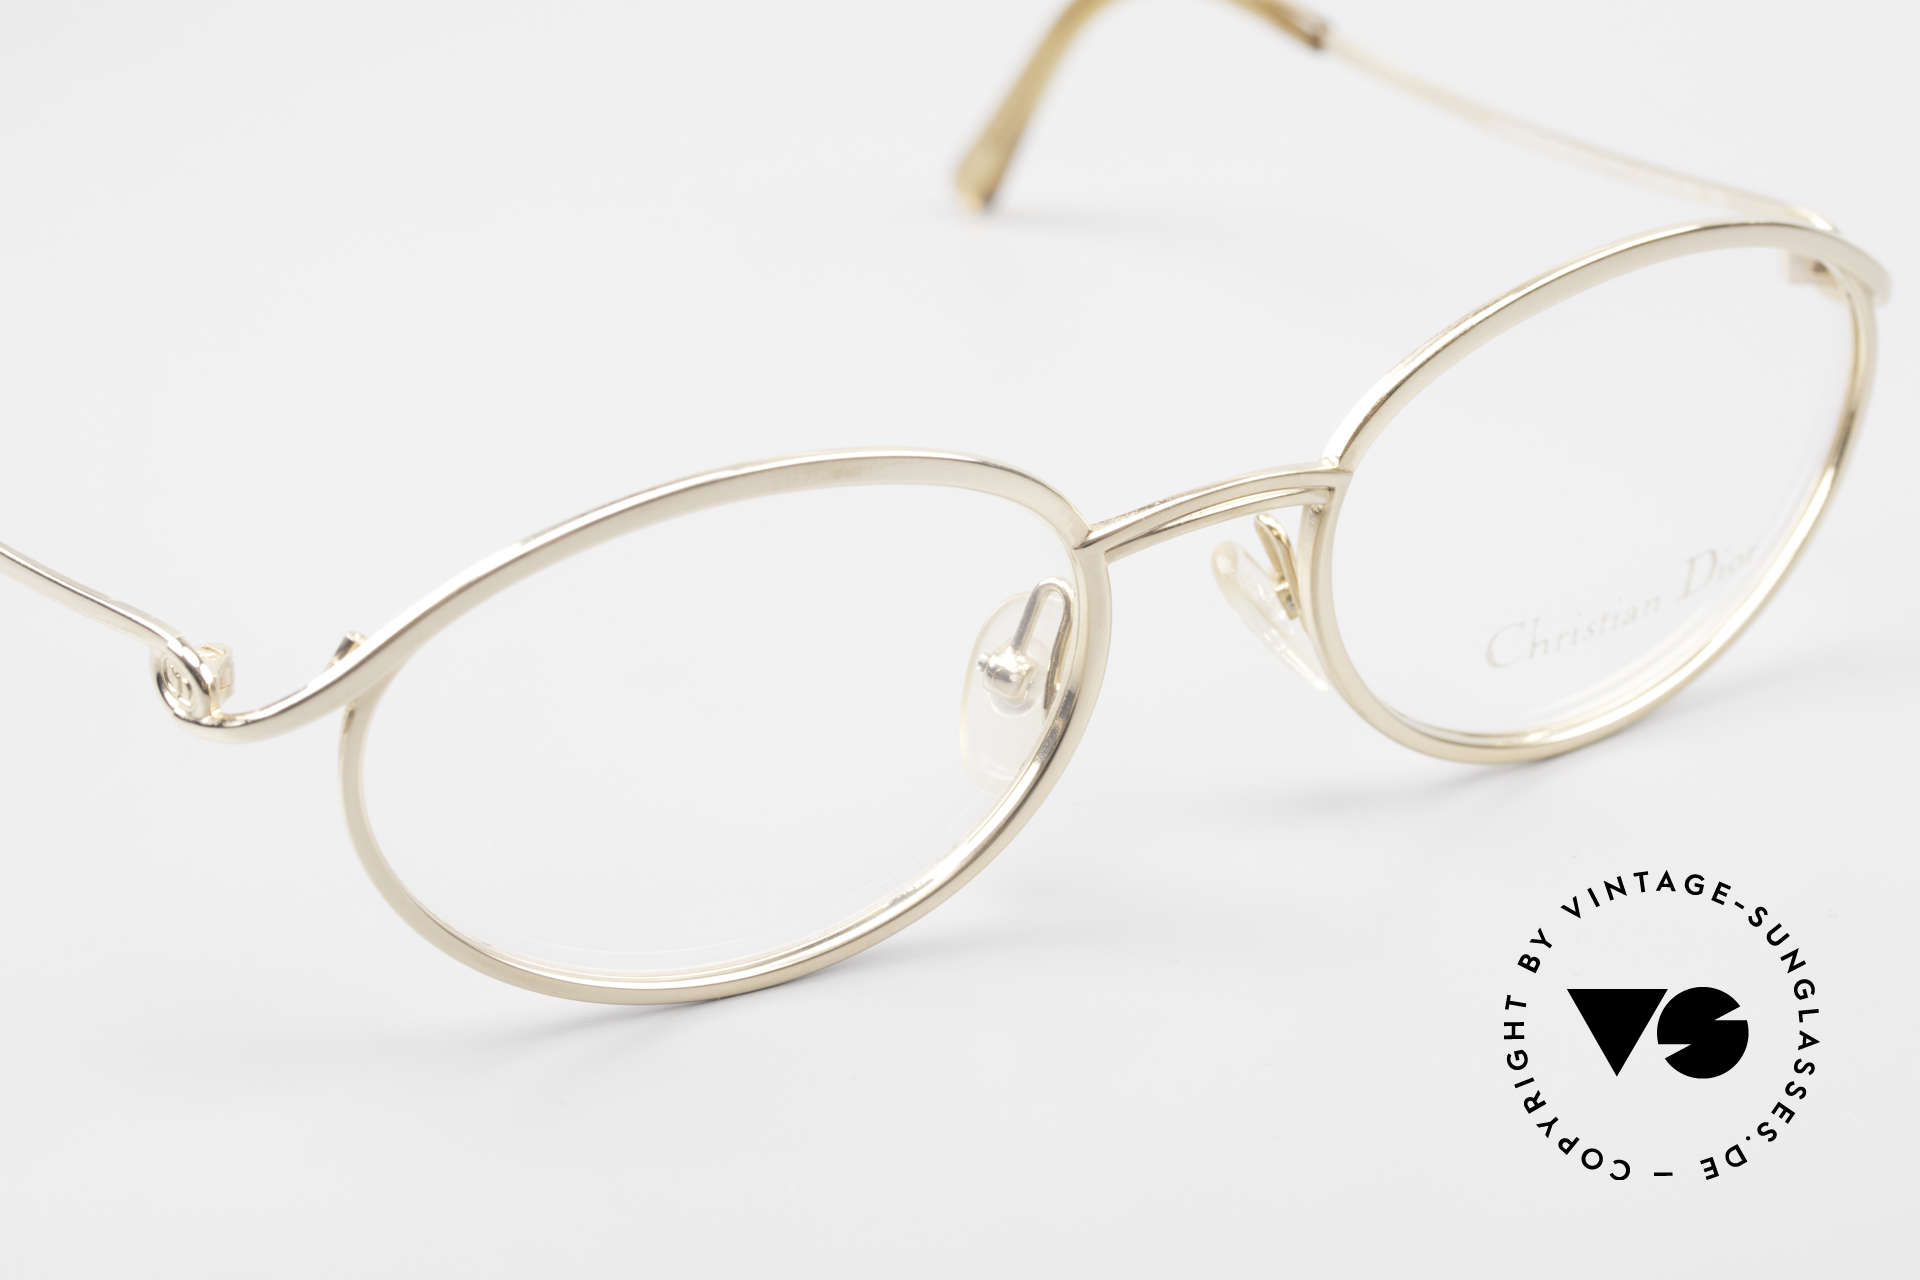 Christian Dior 2939 Ladies 90's Frame Gold Plated, NO RETRO DESIGN, but an old 1990's original, Made for Women